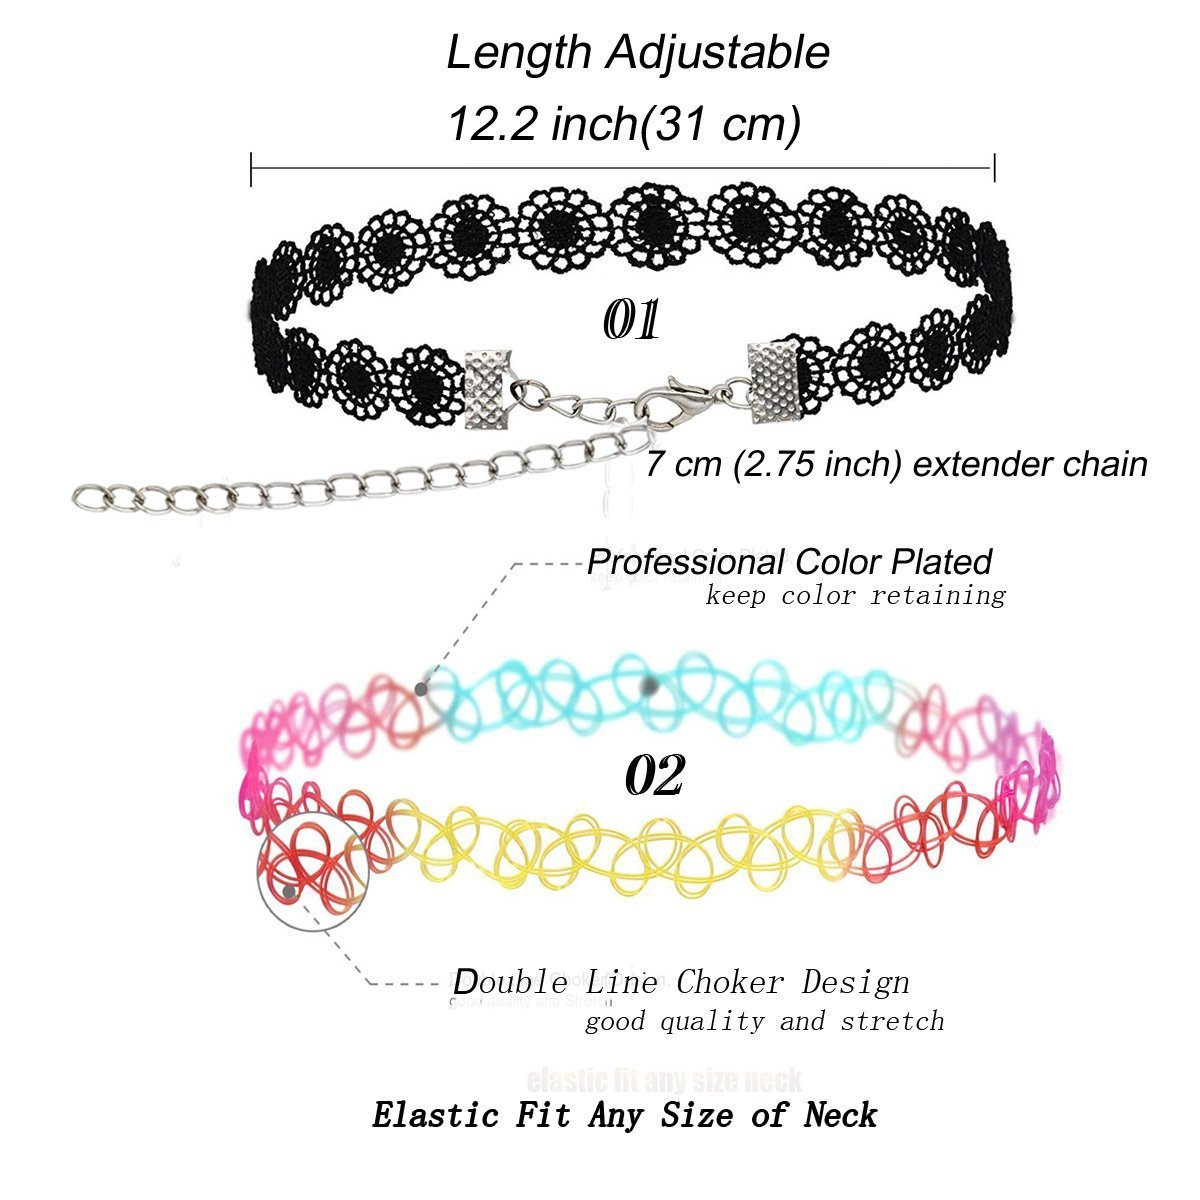 56 PCS Choker Necklace, K&Q Classic Stretch Colorful Gothic Collar Tattoo Choker Necklace and Black Cute Lace Velvet Choker Necklace Set for Girls and Women by K&Q (Image #2)